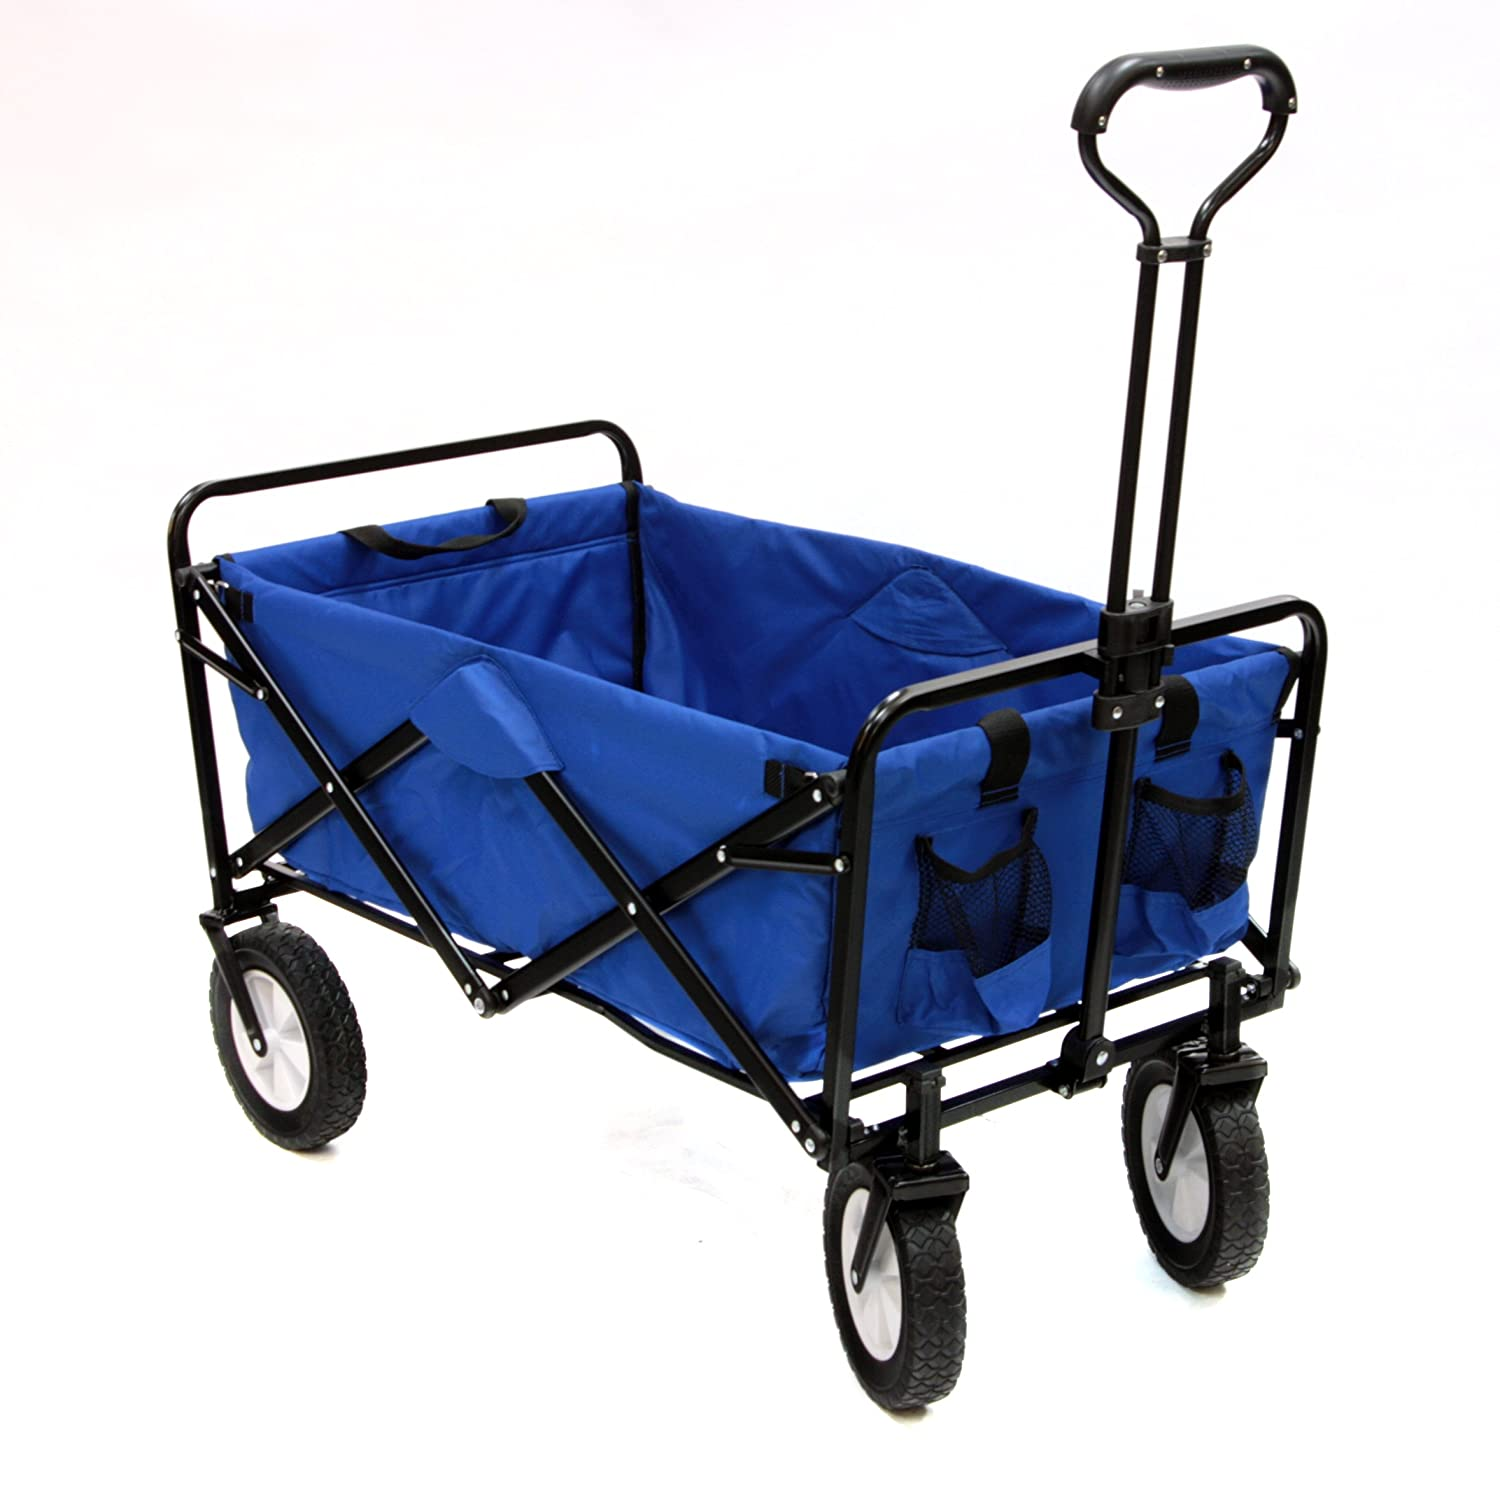 Amazon.com : Mac Sports Collapsible Folding Outdoor Utility Wagon ...